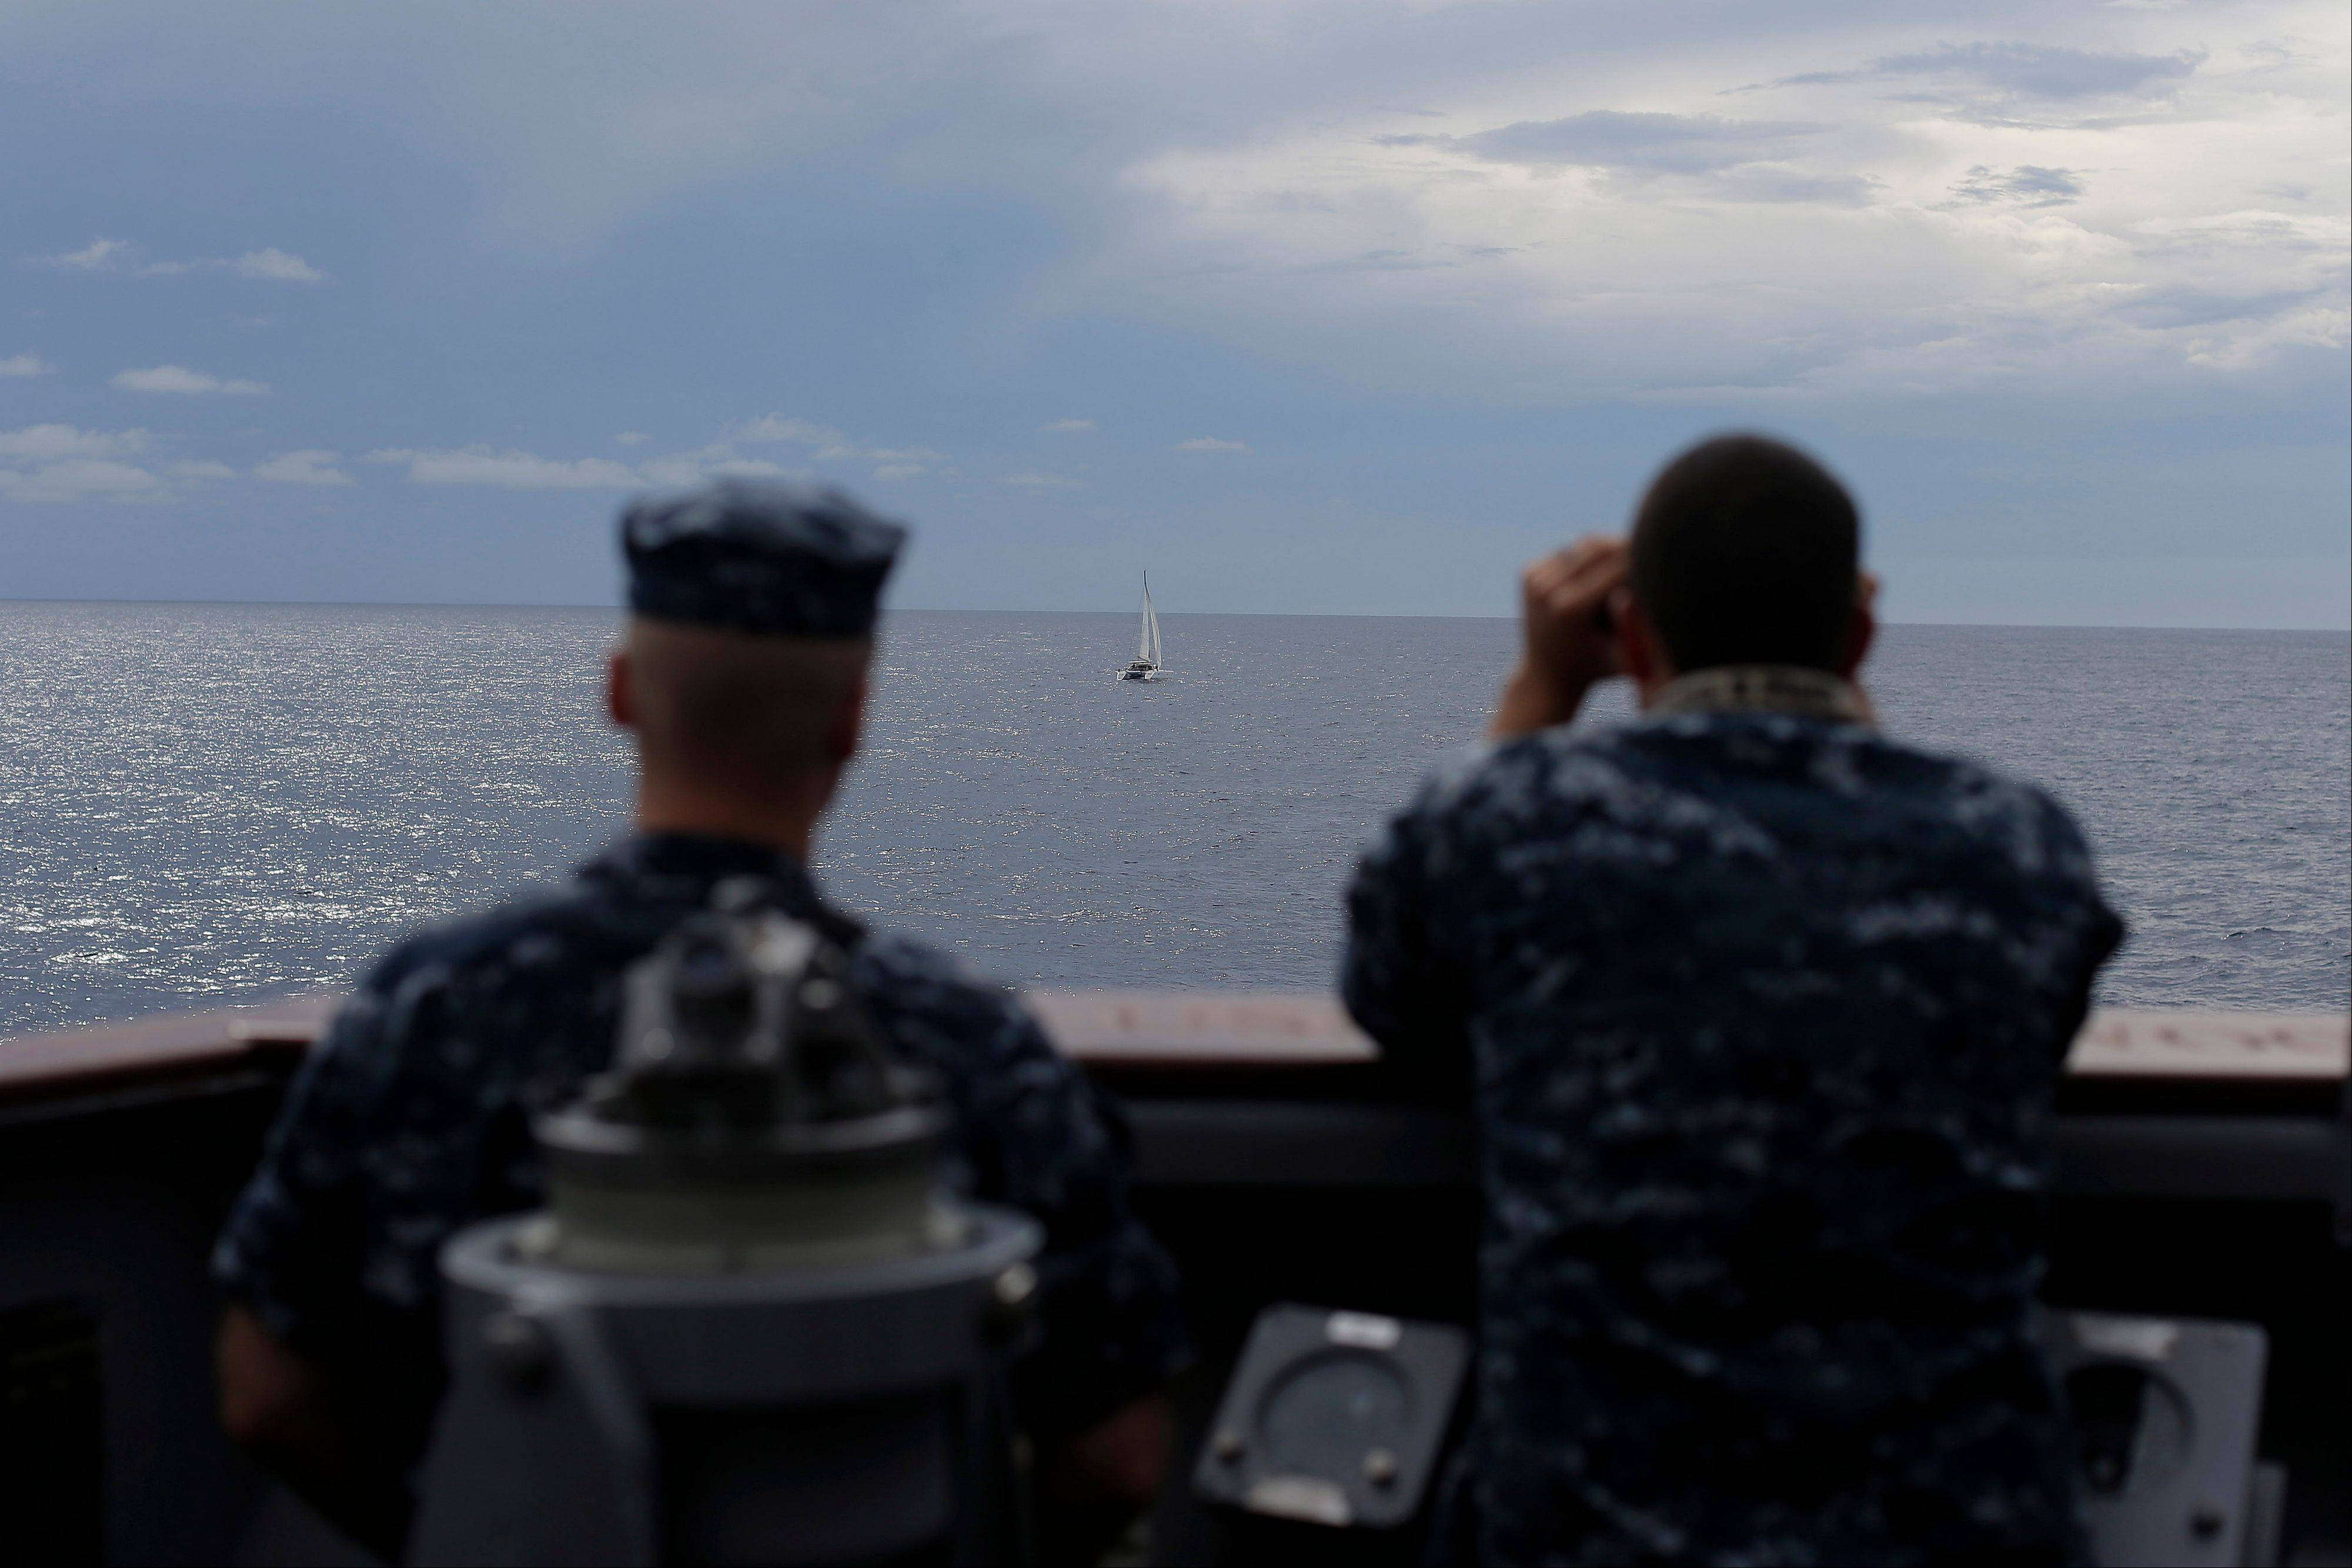 U.S. Navy sailors look out at a small sailing vessel as the USS Underwood prepares to approach them while patrolling in international waters near Panama.